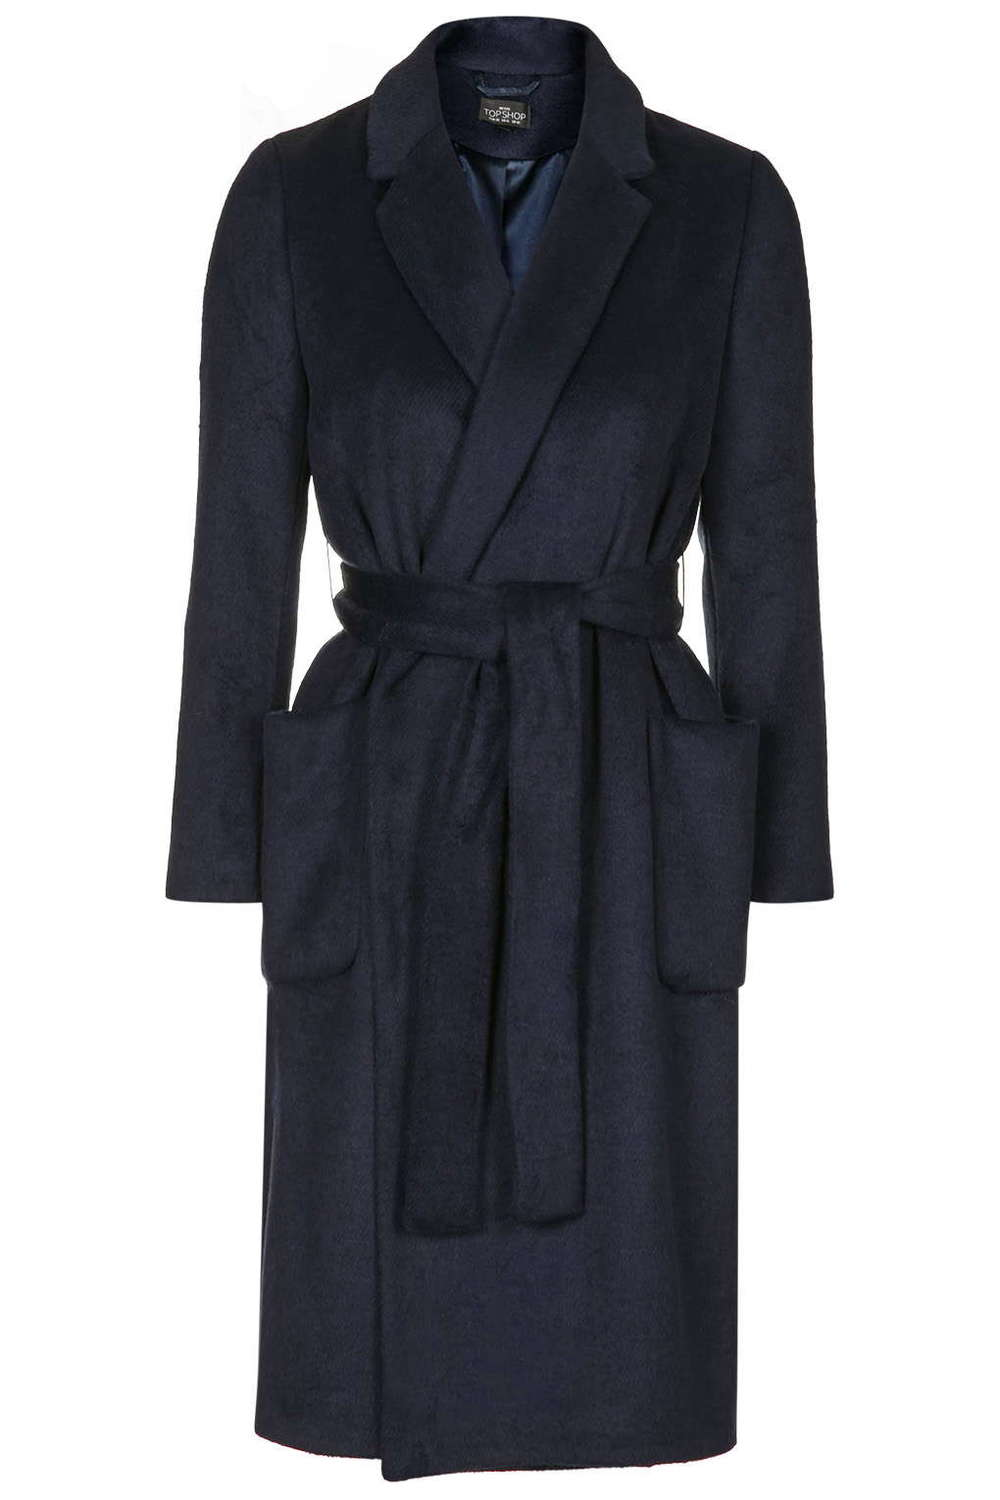 Petite Belted Wool Blend Coat. Topshop. $170.